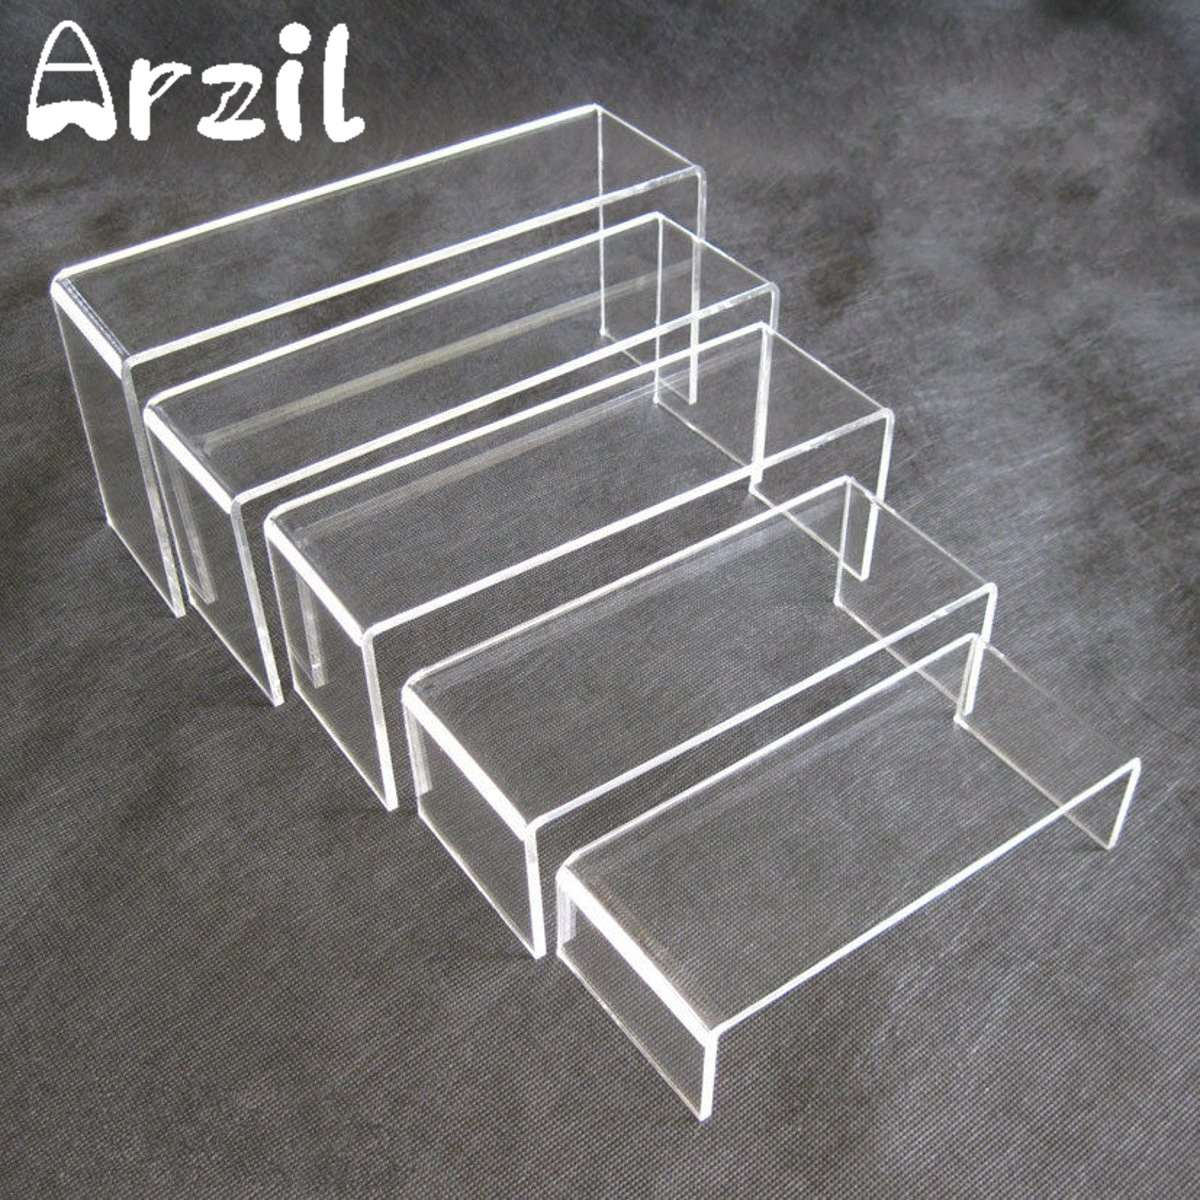 5pcsset clear acrylic perspex jewellery display rack holder riser set stand showcase storage shelf 4mm thickness